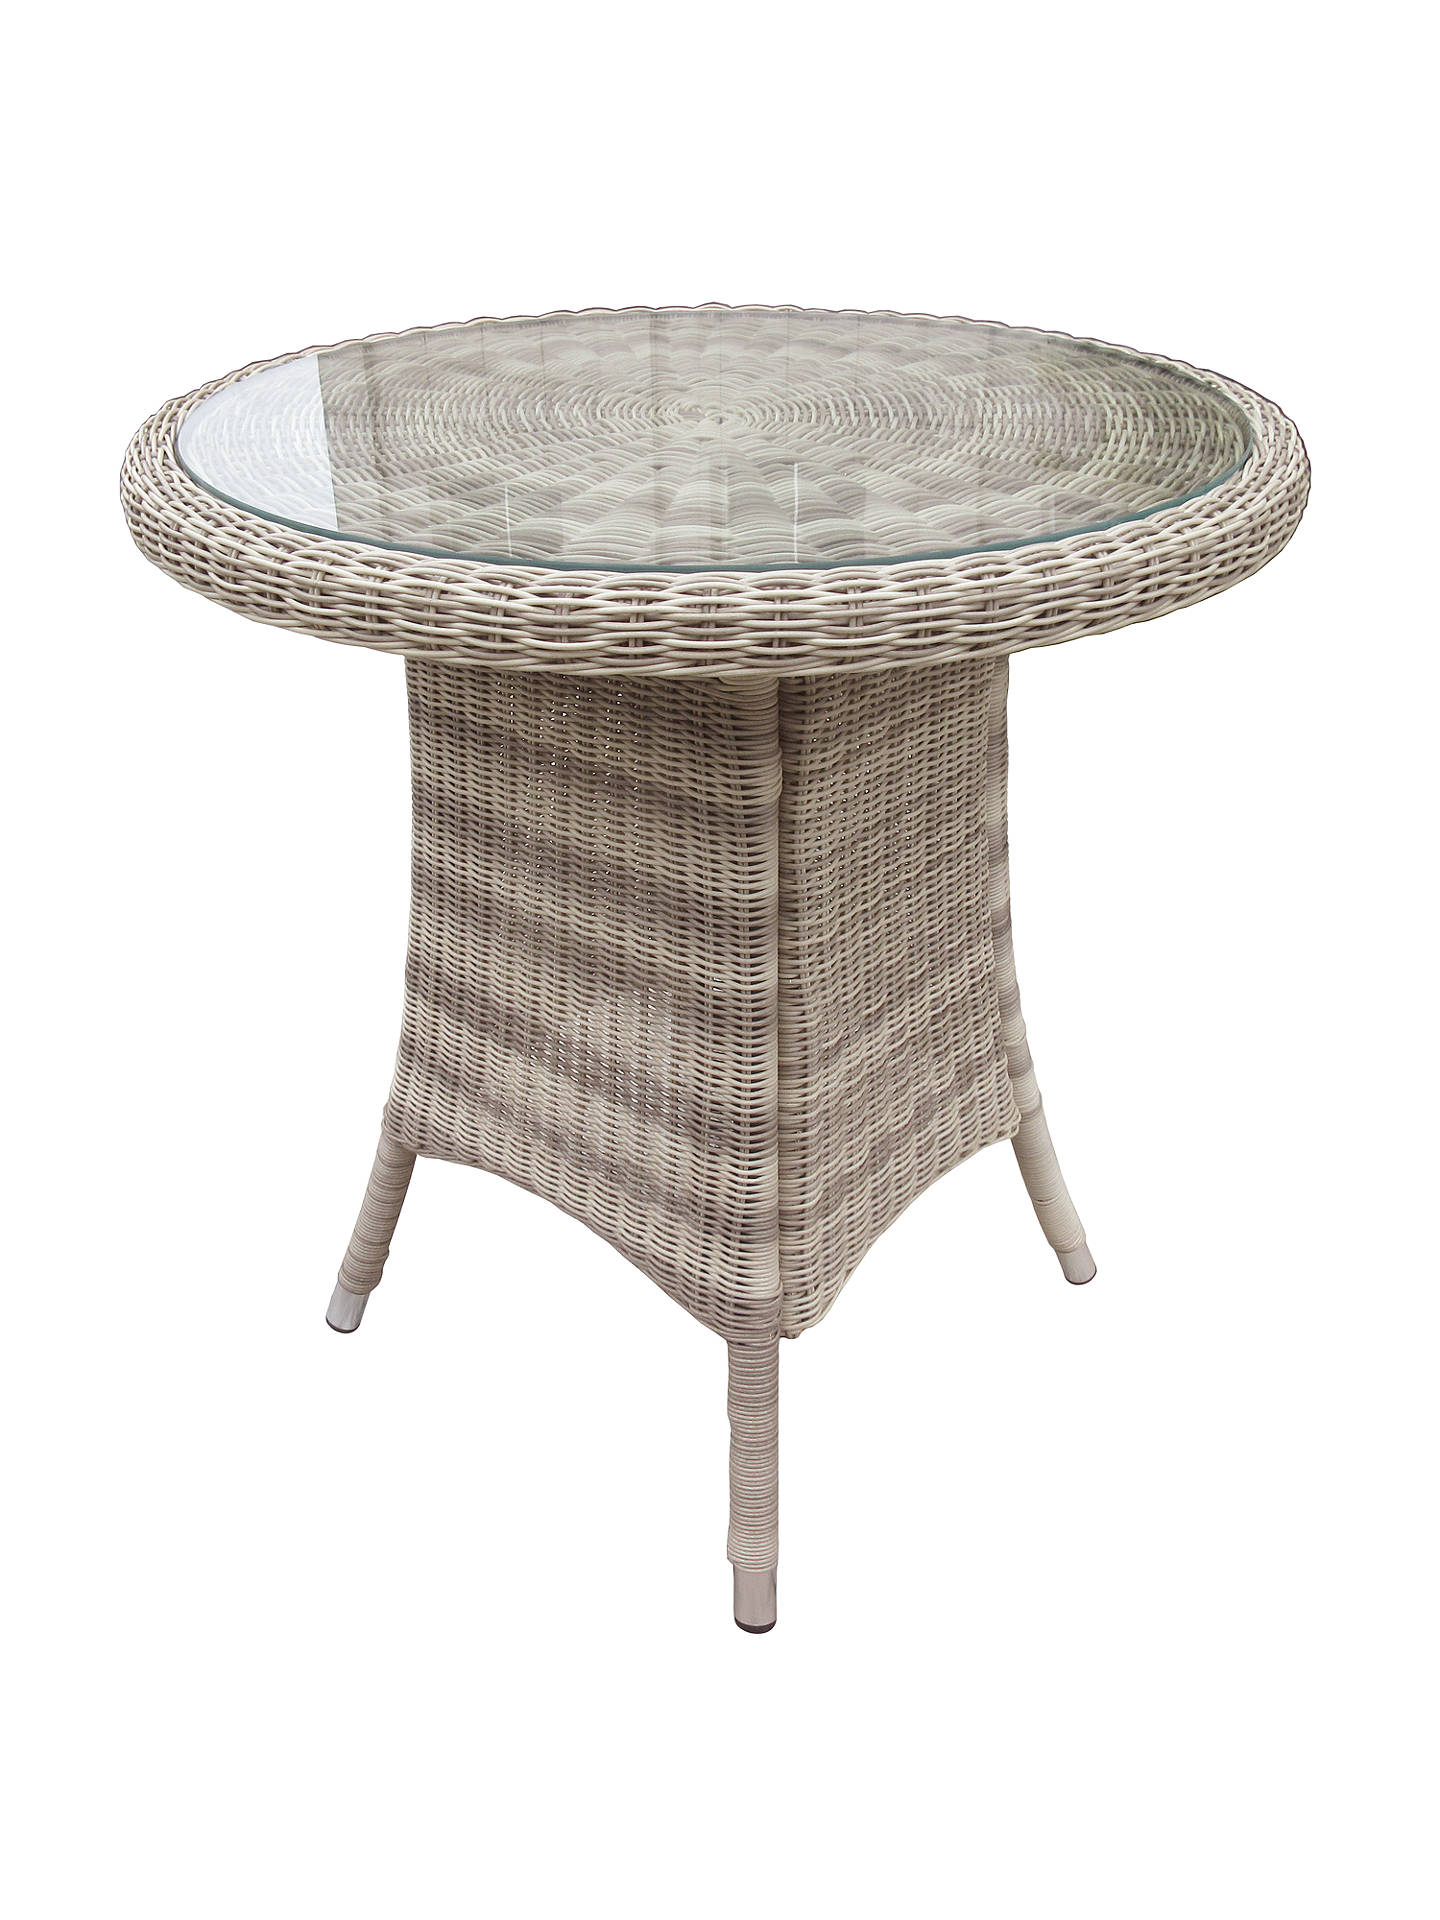 BuyJohn Lewis & Partners Dante Garden Bistro Table, Natural Online at johnlewis.com